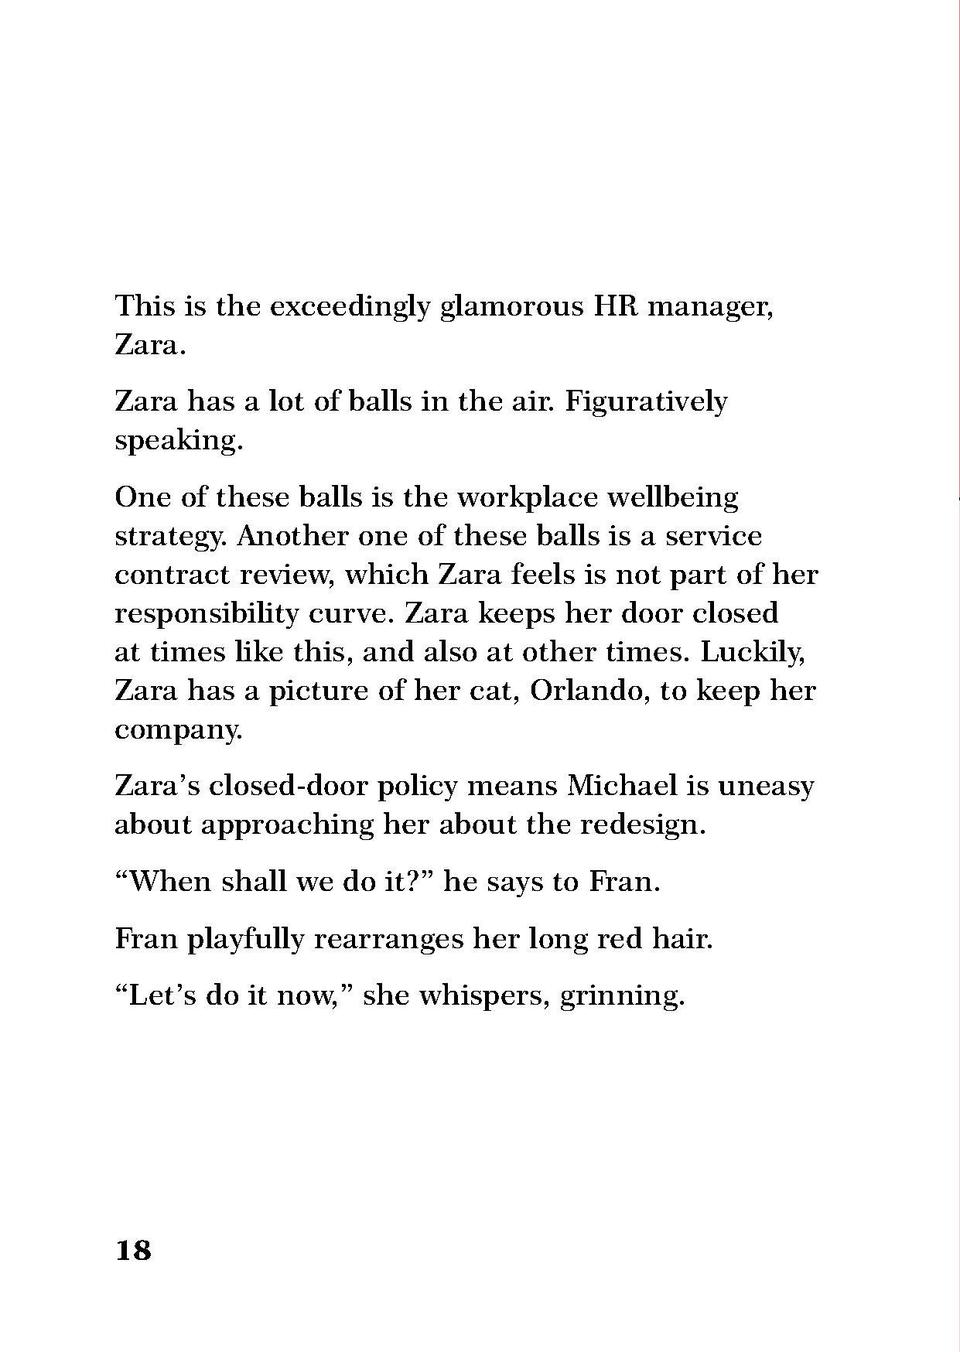 This is the exceedingly glamorous HR manager, Zara. Zara has a lot of balls in the air. Figuratively speaking. One of thes...